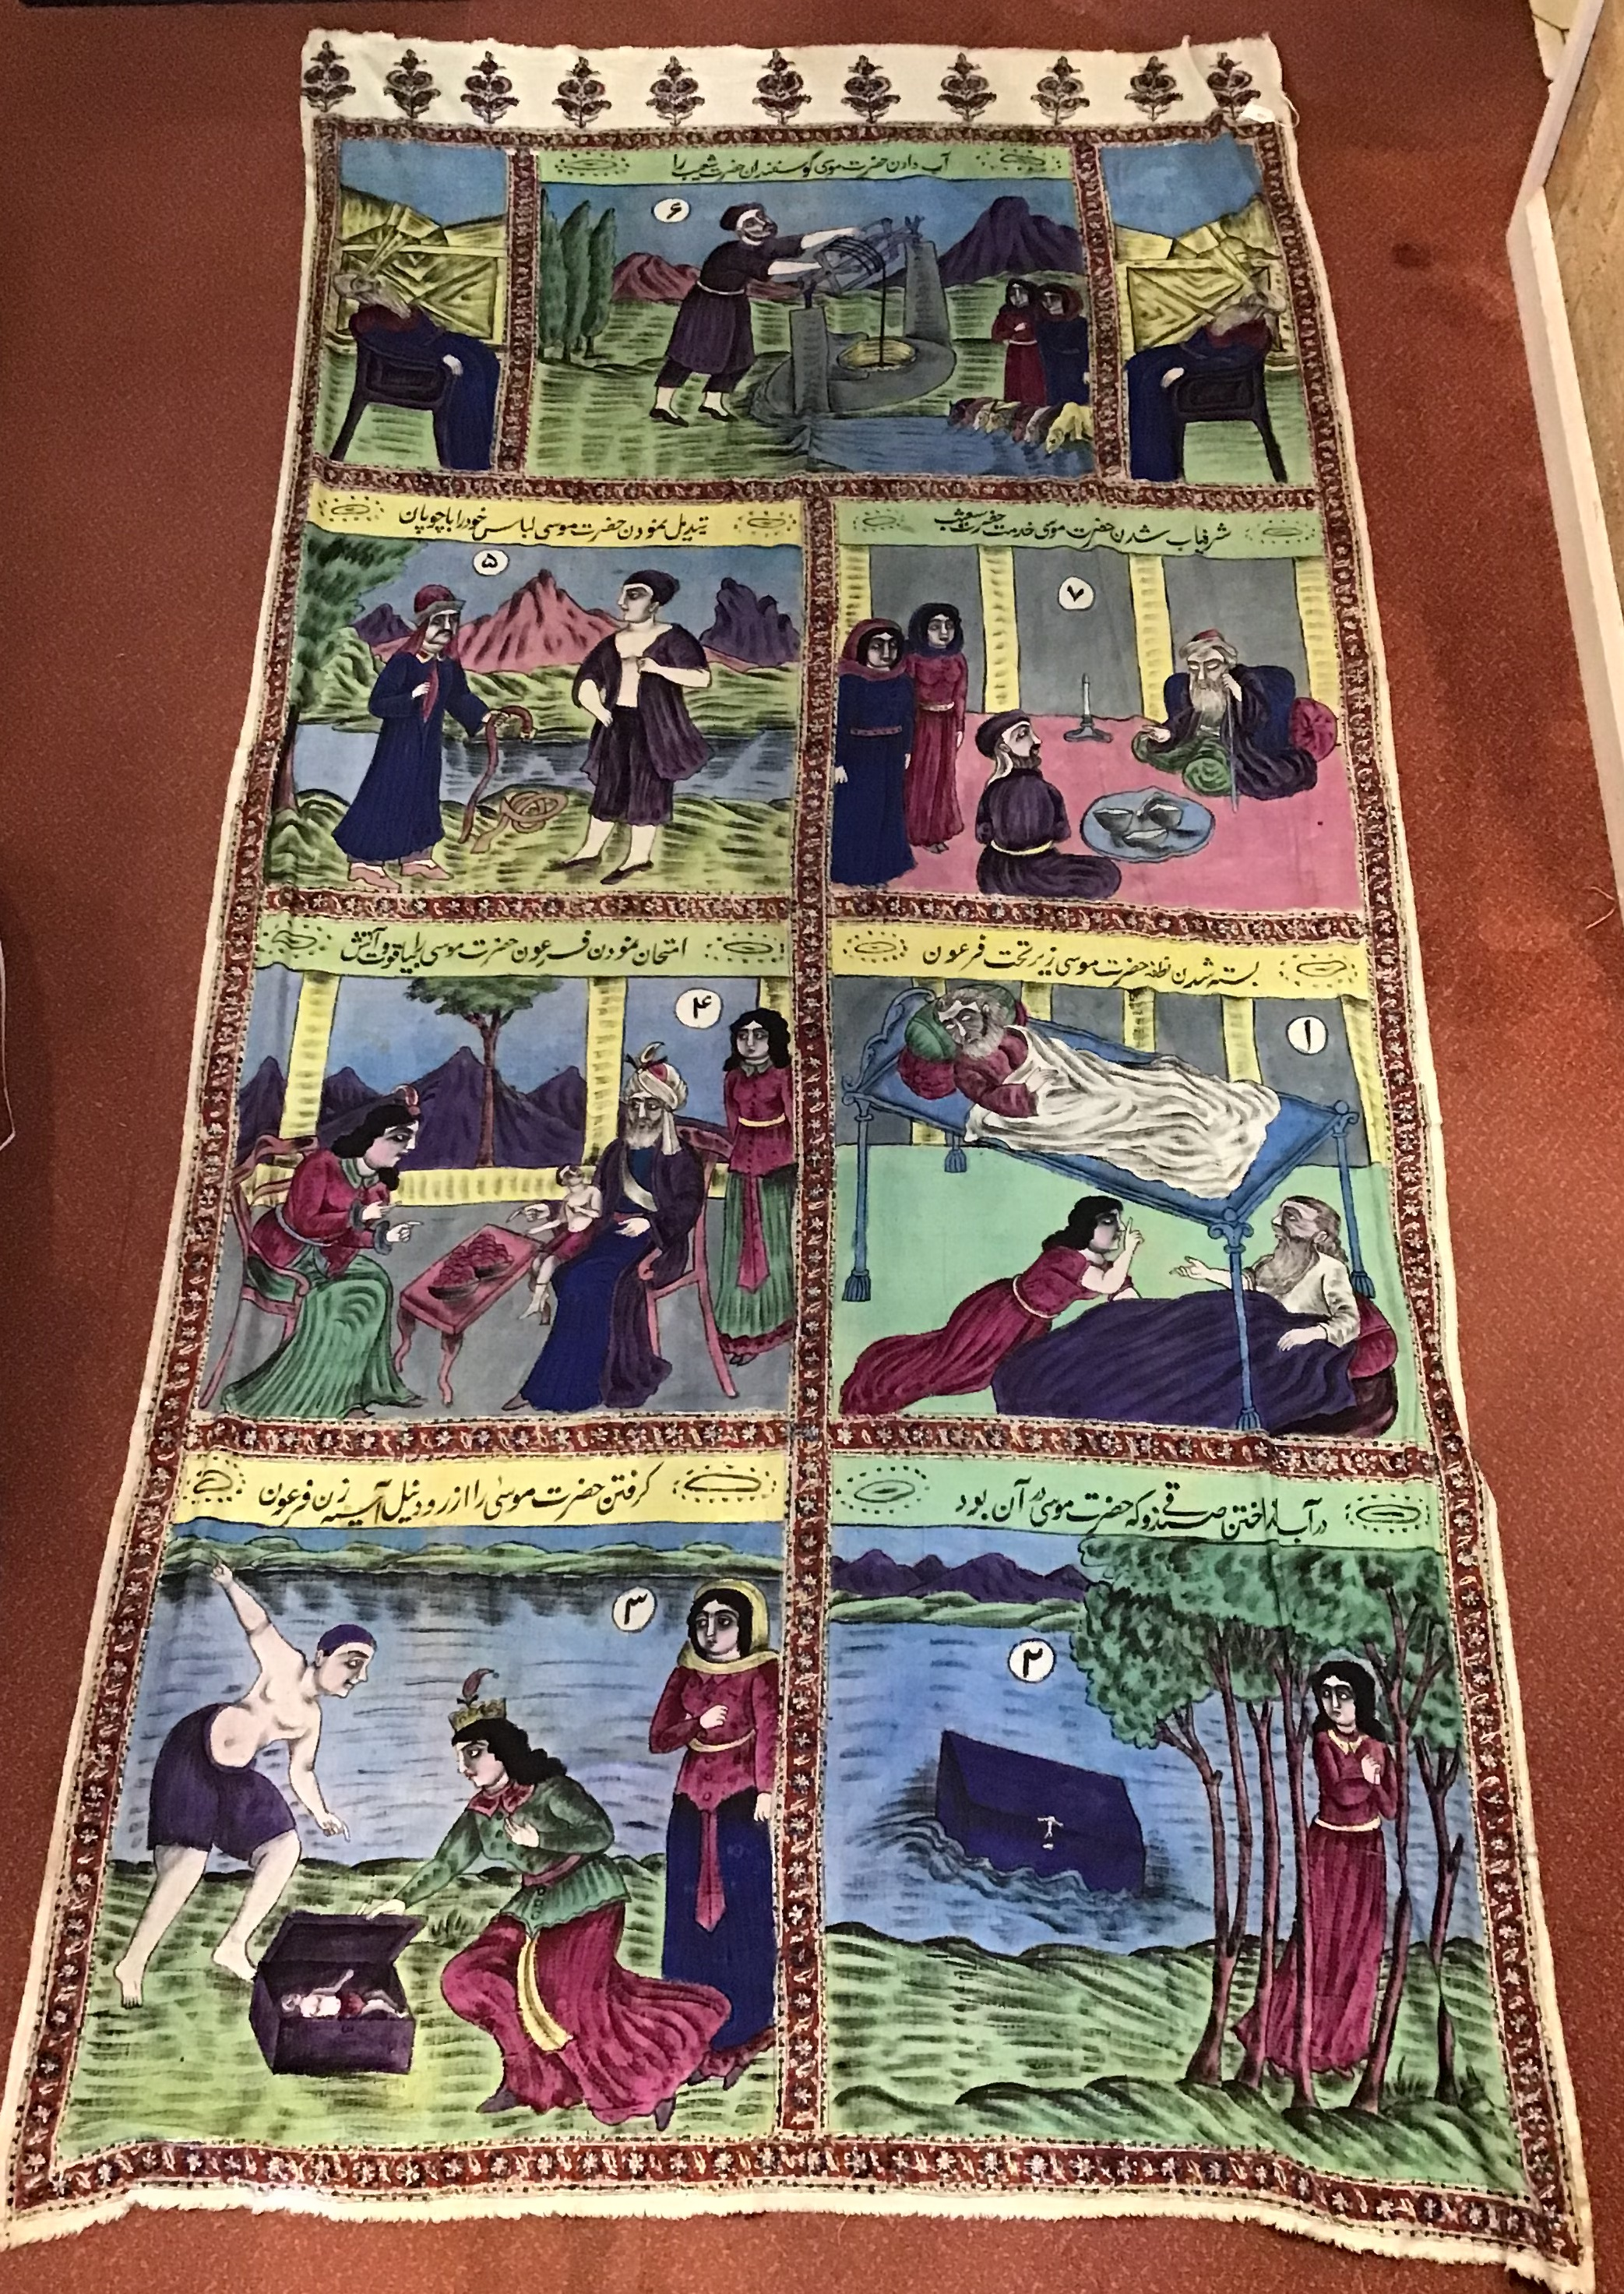 An Isfahan polychrome printed wall hanging depicting scenes from a traditional story in panel with